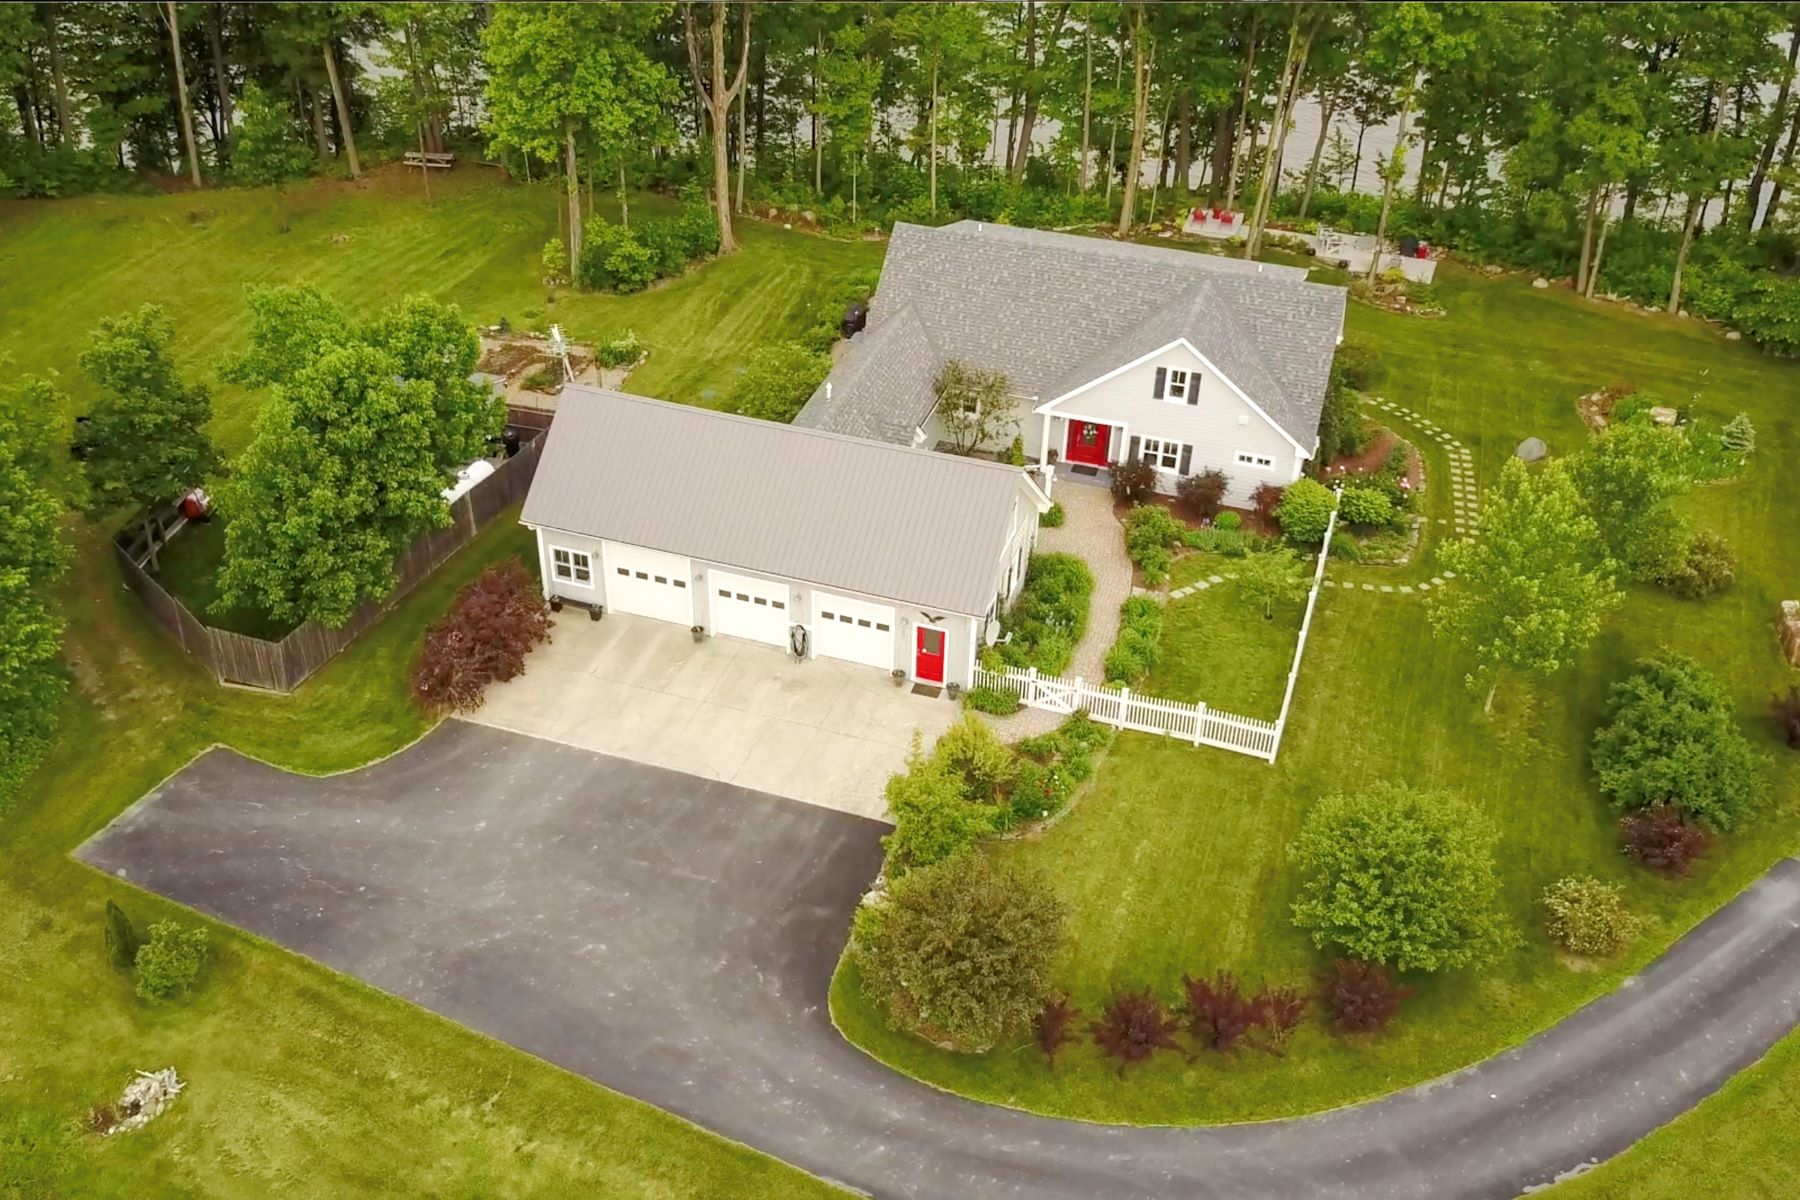 Single Family Homes for Sale at Hickory Ridge 500 Bridge Rd Crown Point, New York 12928 United States